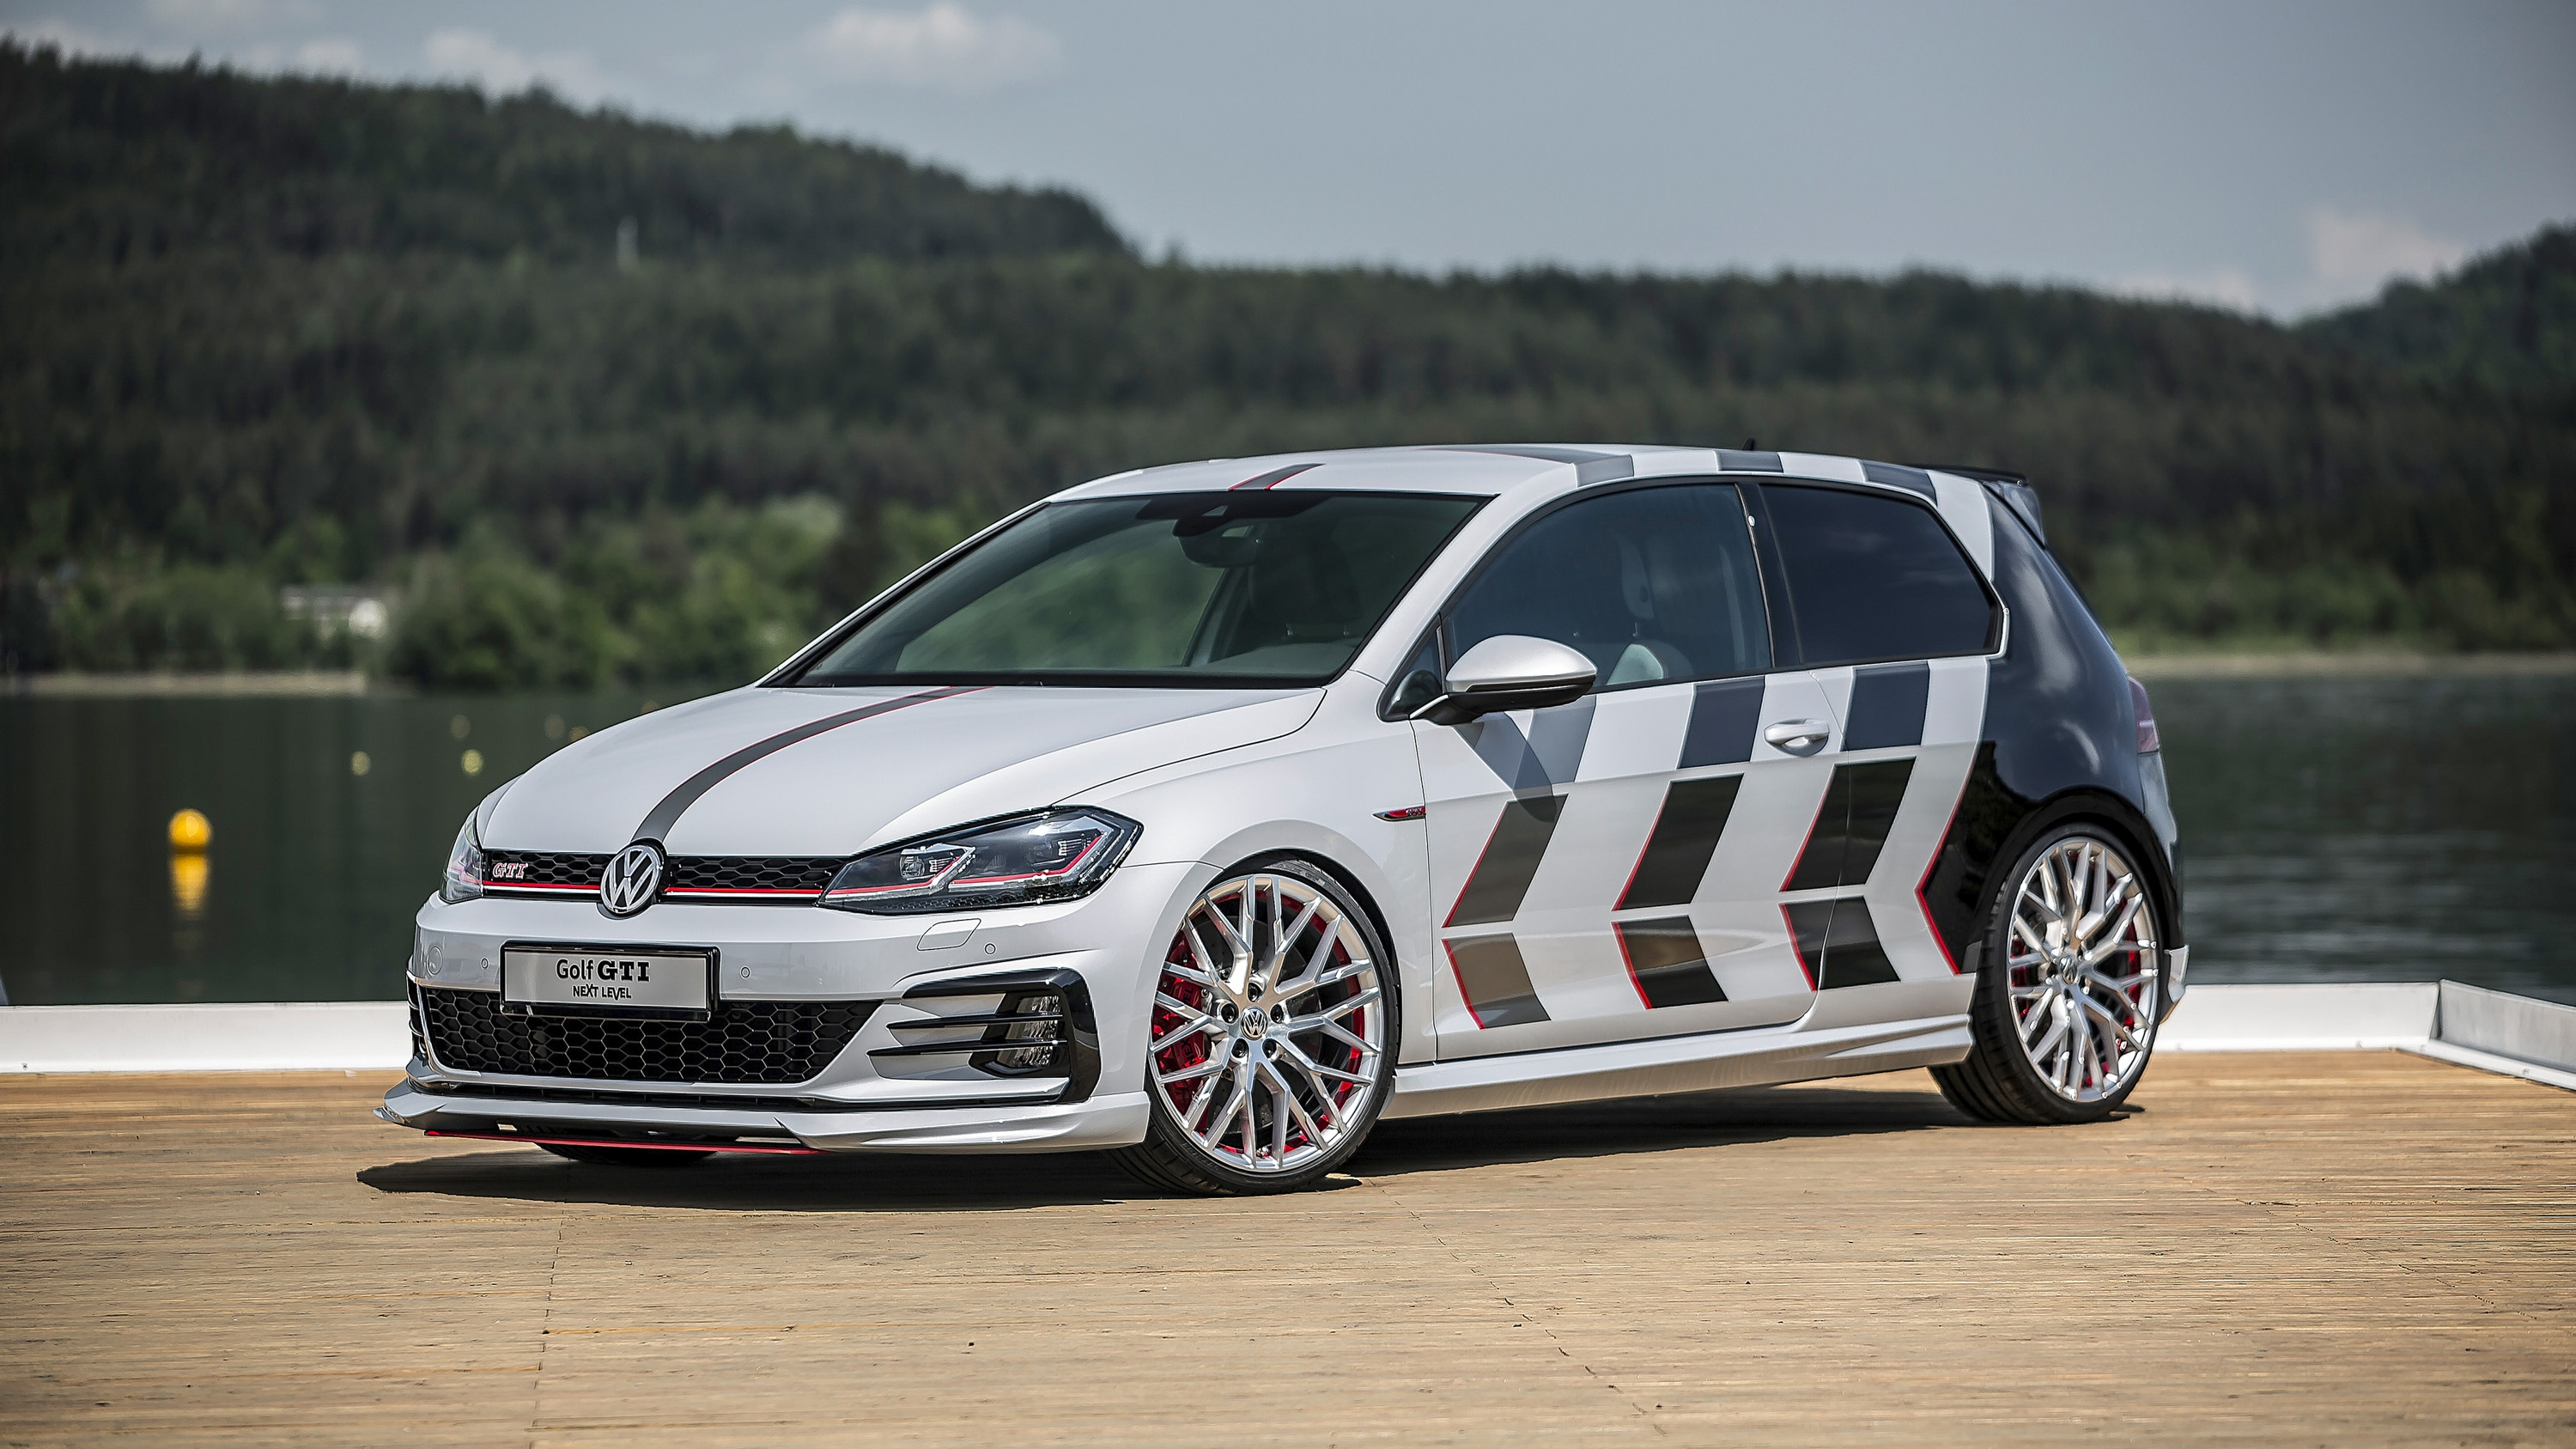 2018 Volkswagen Golf GTI Next Level Pictures, Photos, Wallpapers.